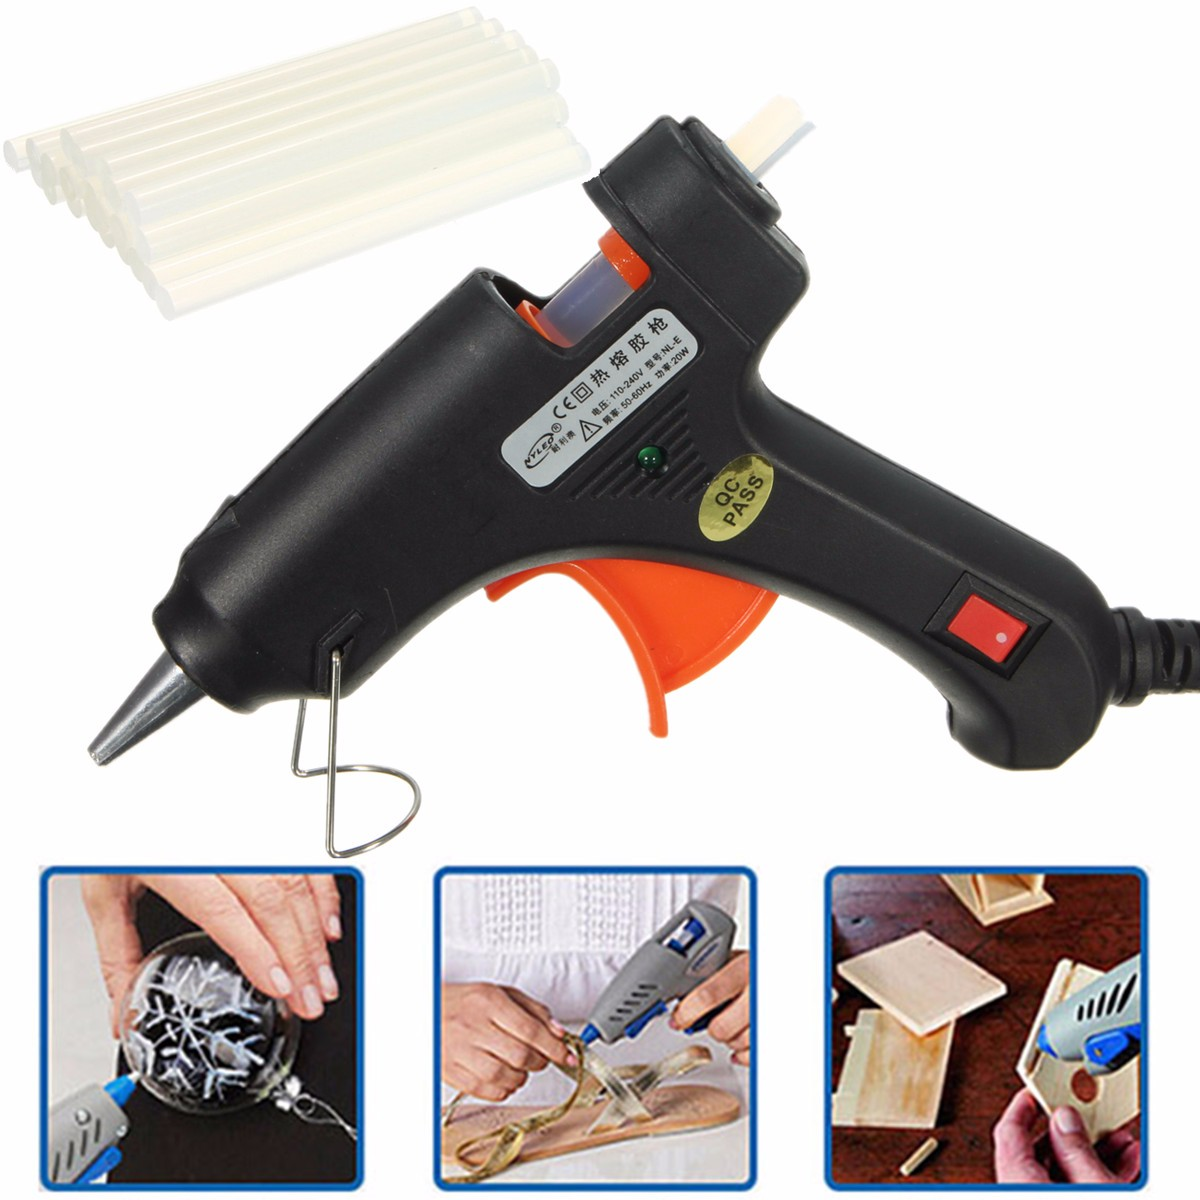 Electric 20W Hot Melt Art Craft Glue Gun with 50Pcs Free Mini Clear Glue Sticks